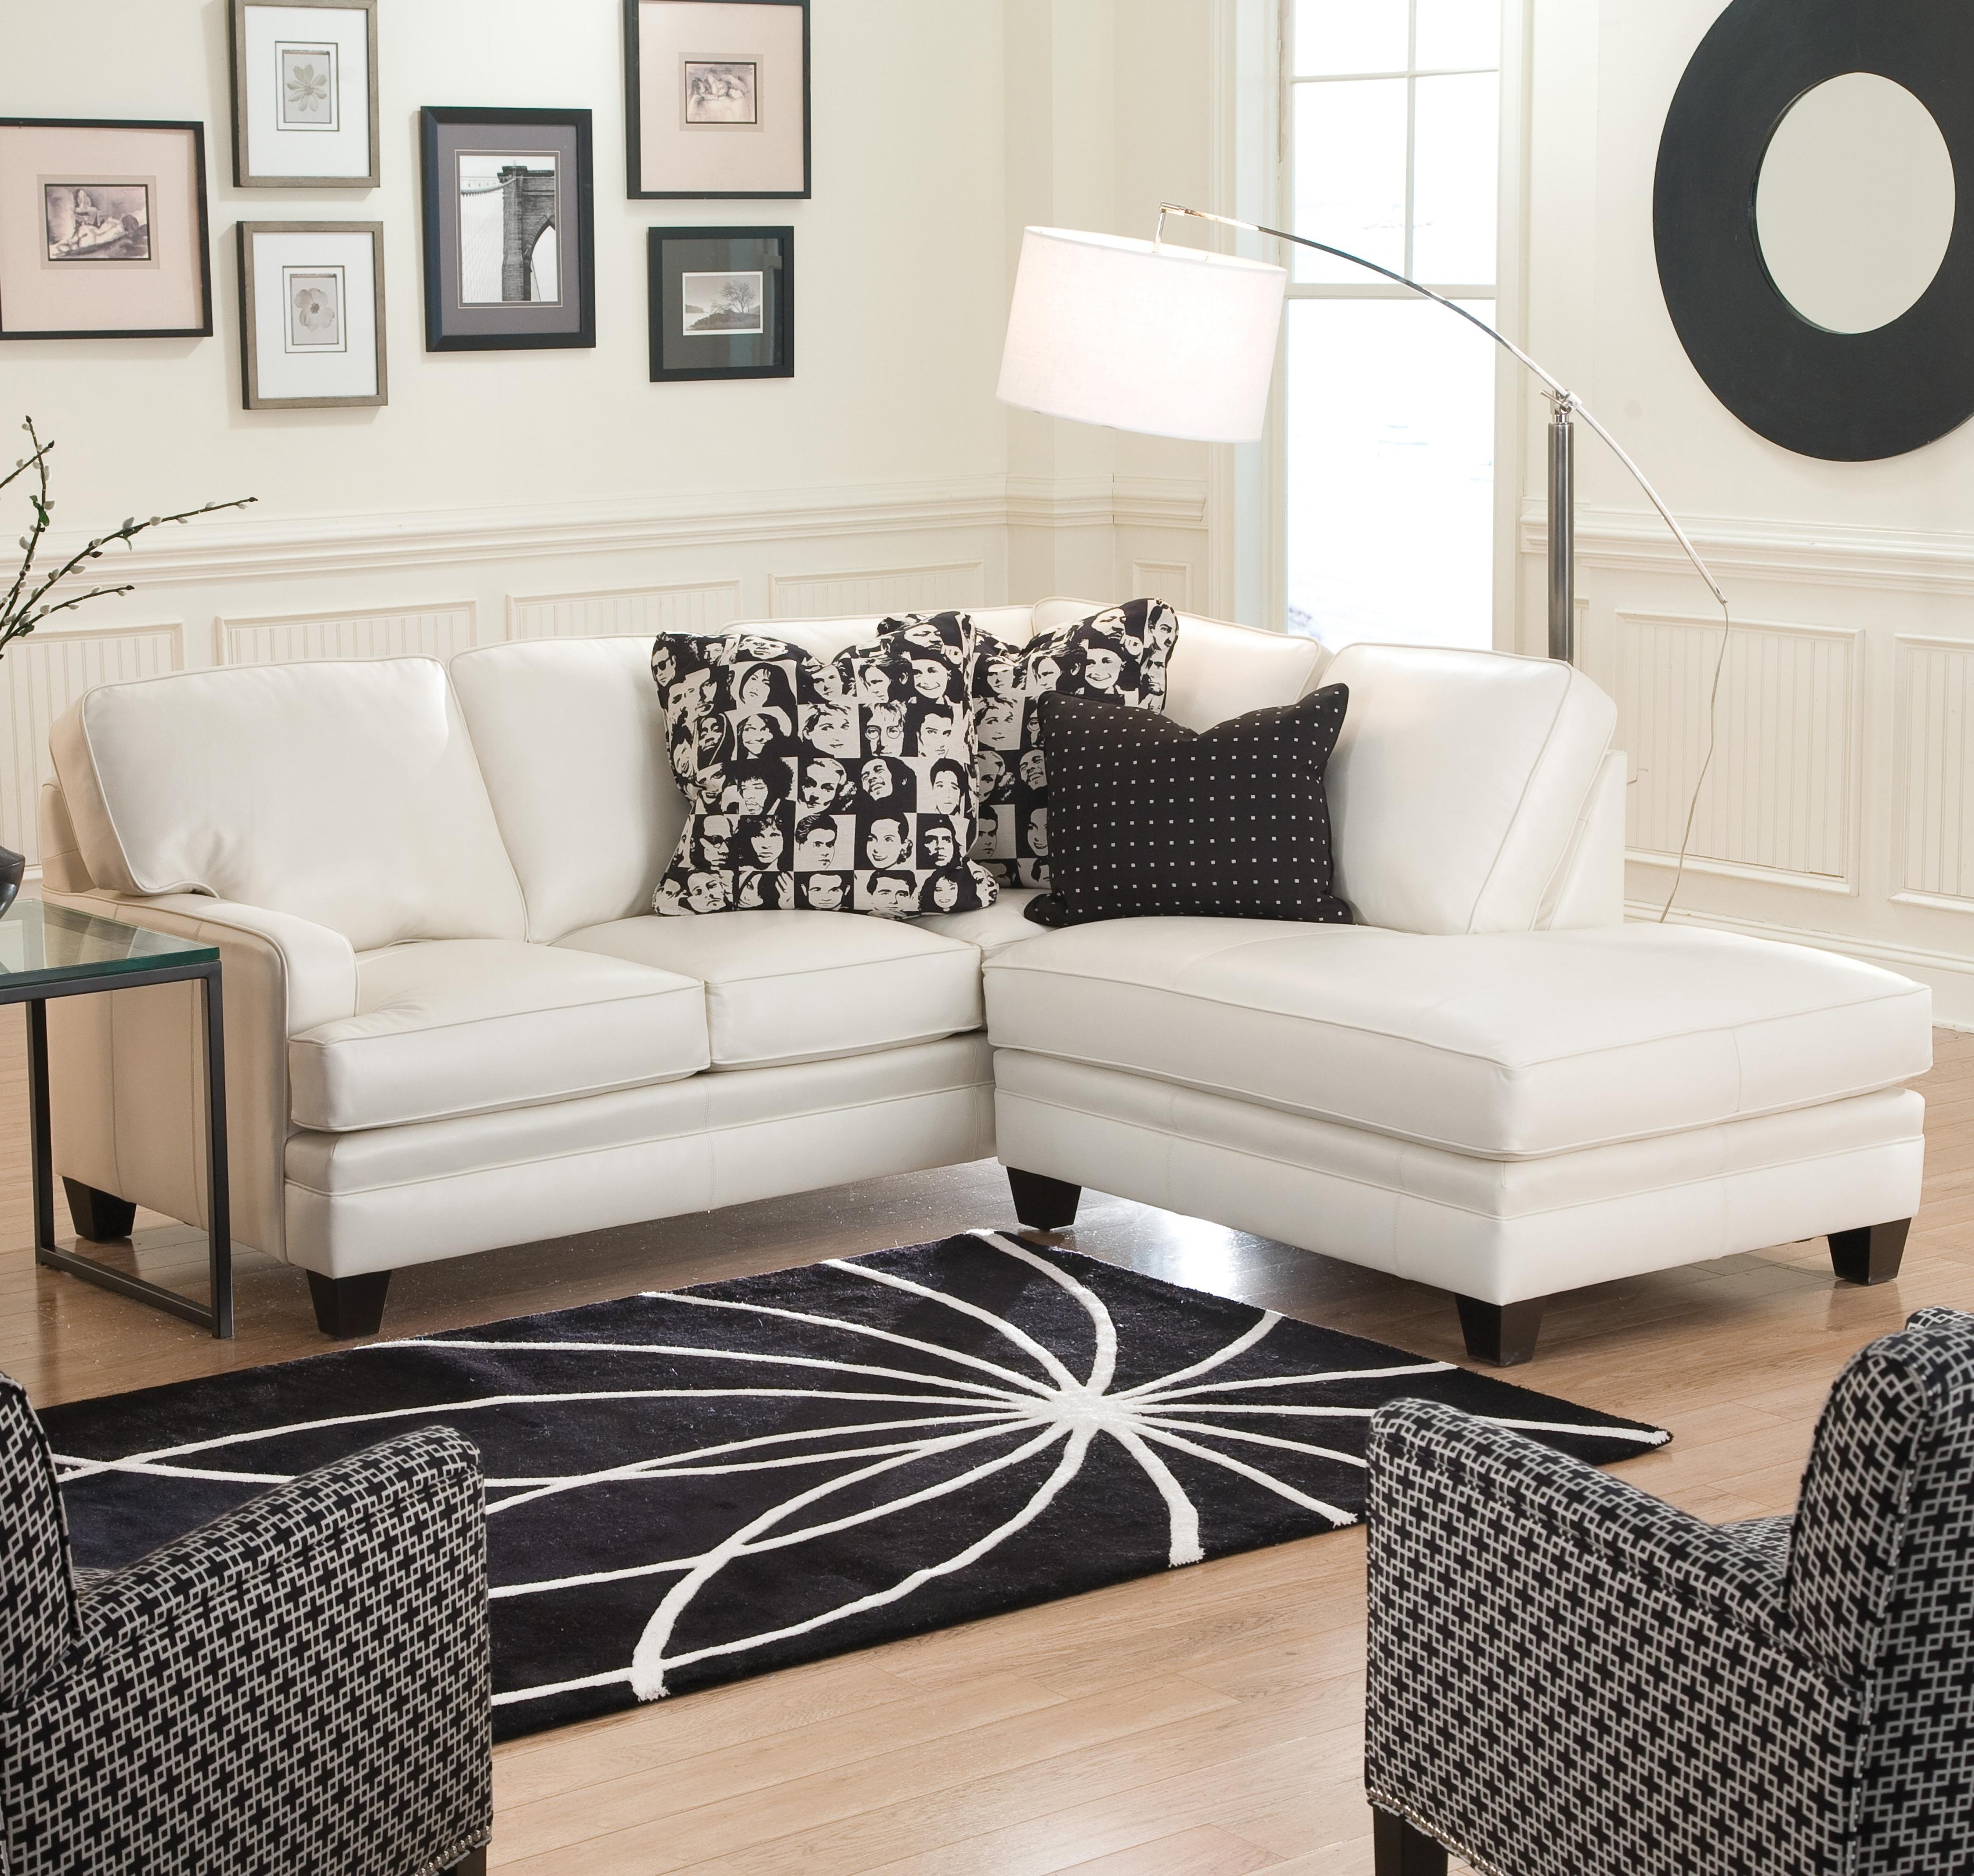 Fashionable Unique Sectional Sofas With Regard To Small Sectional Sofa With Contemporary Looksmith Brothers (View 5 of 15)